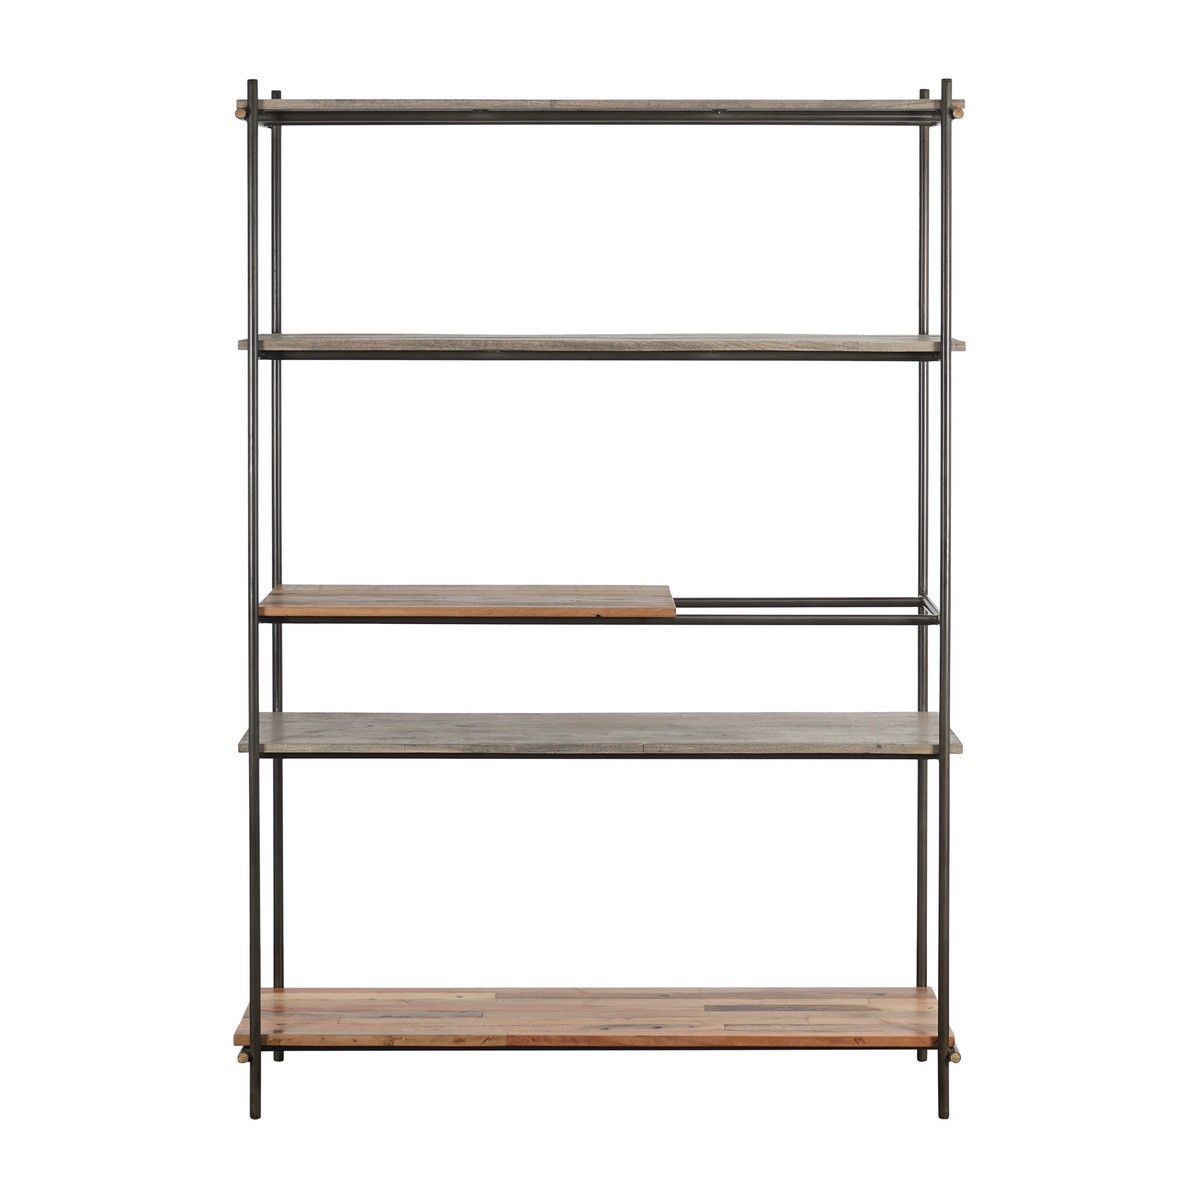 Discreet Reclaimed Timber & Metal Display Shelf